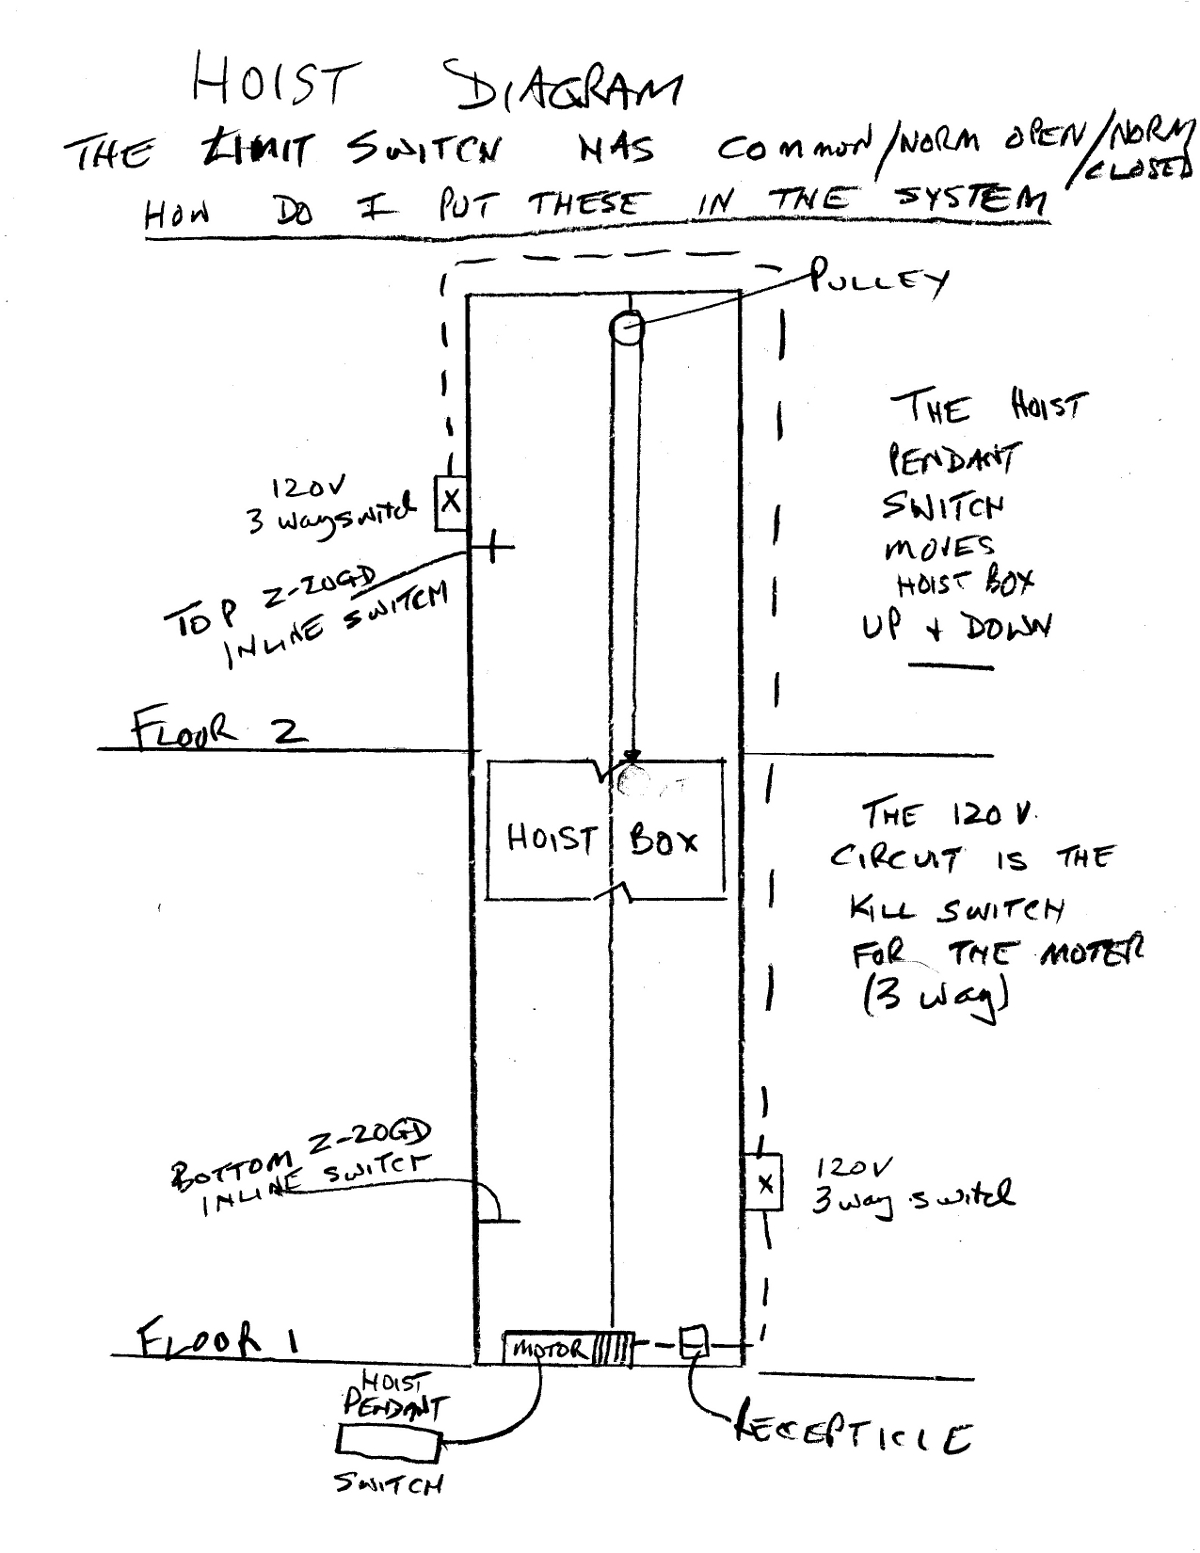 I Have A Two Floor 120 Volt Hoist System Which Has Upper Level